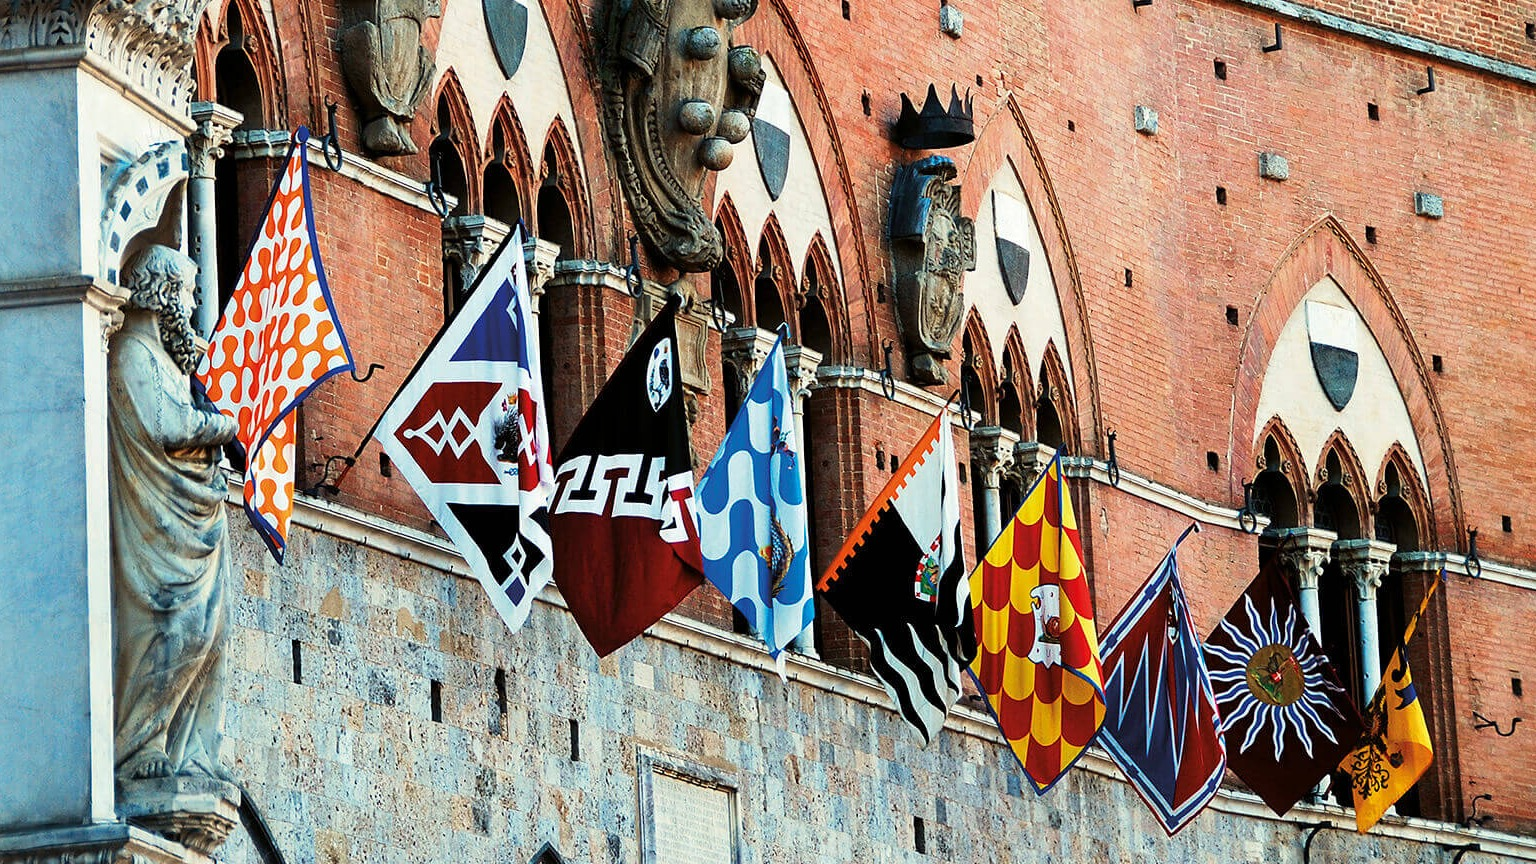 Colourful flags at the Palio di Siena adorning historic building